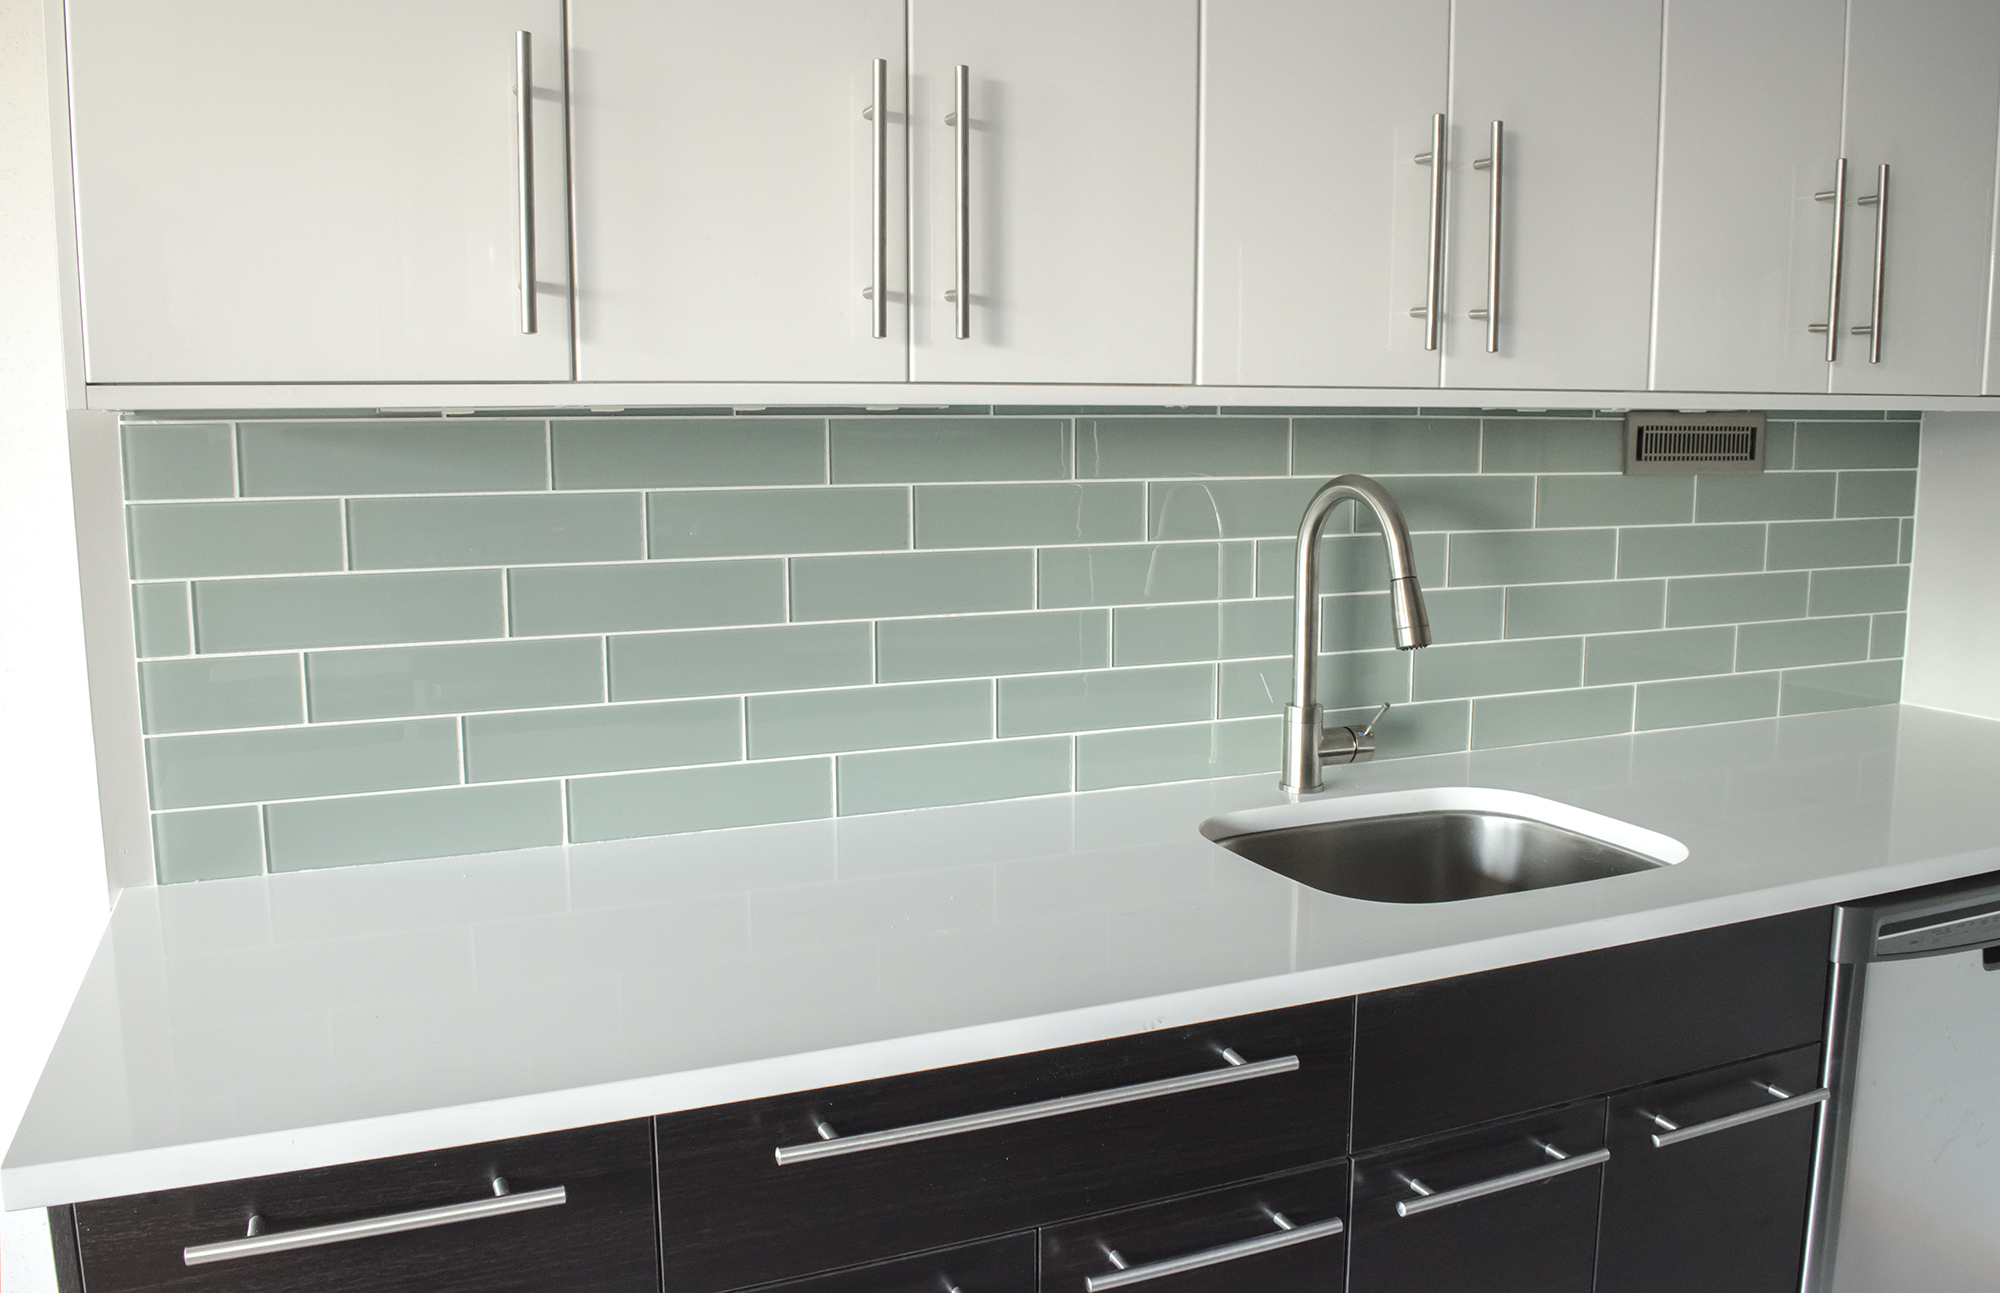 Glass tile backsplash ideas perfect kitchen countertop ideas the kitchen remodel with glass - Ikea bathroom tiles ...